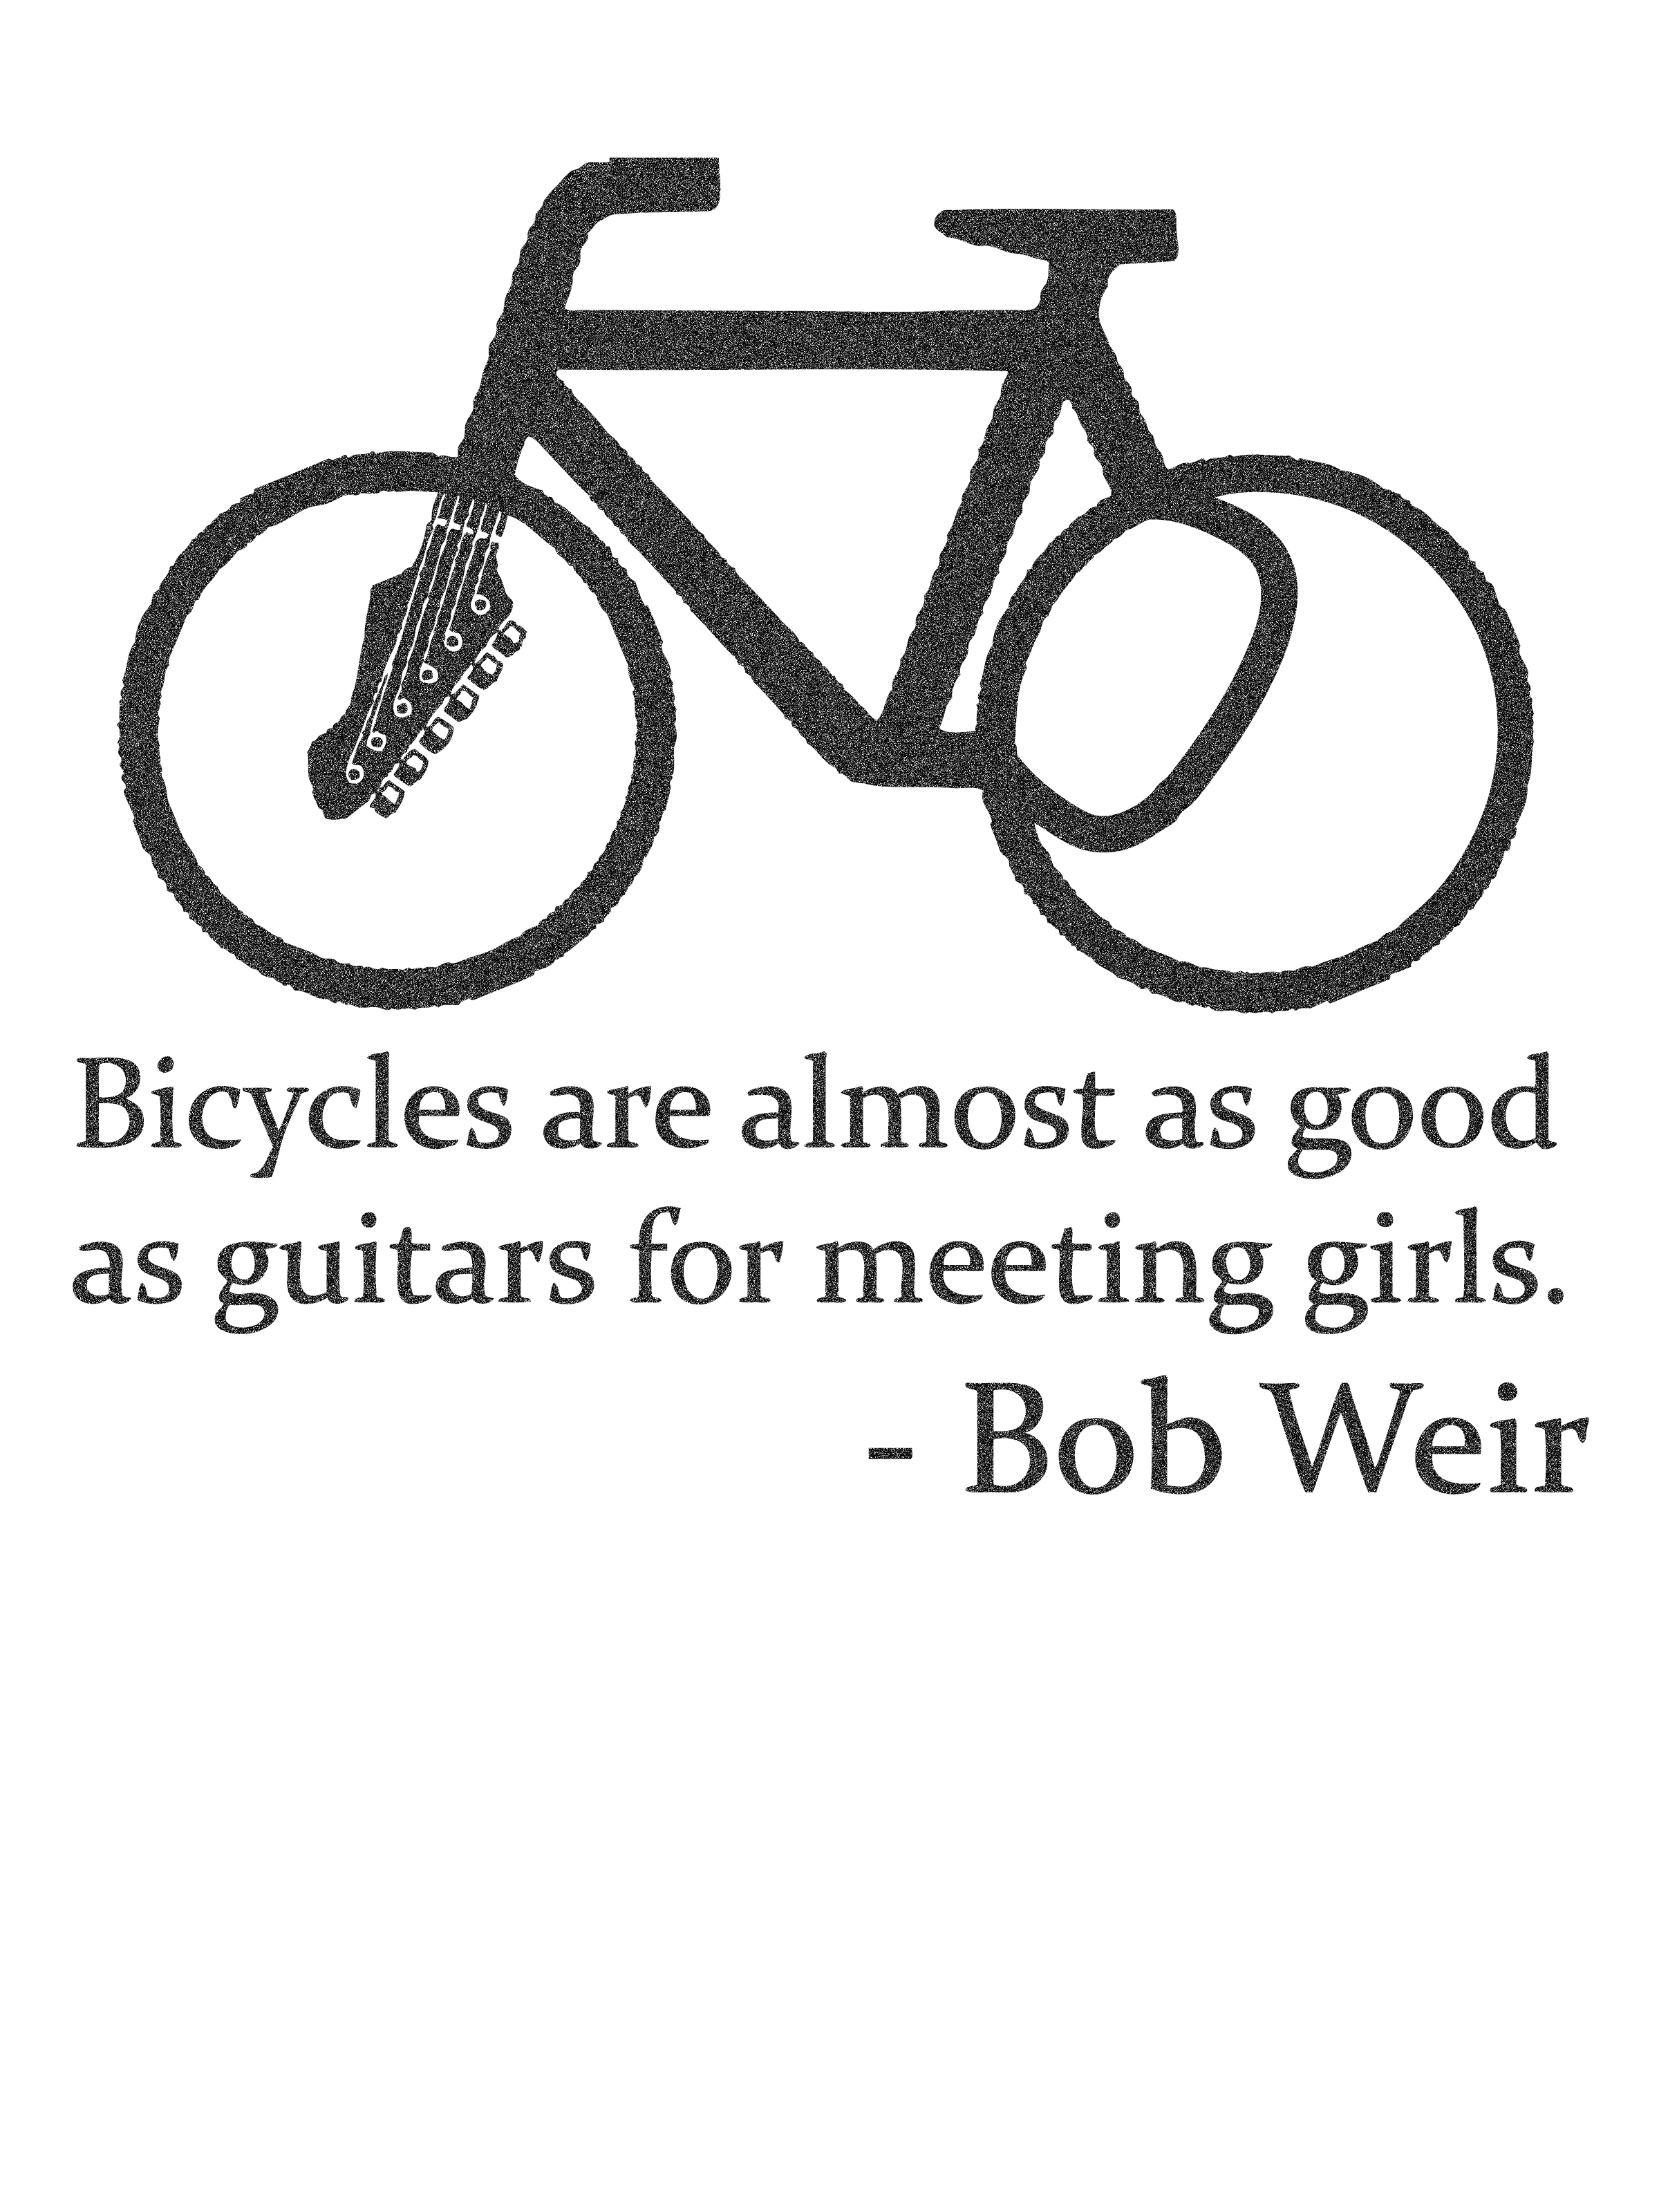 0017 – Bob Wier on Bicycles